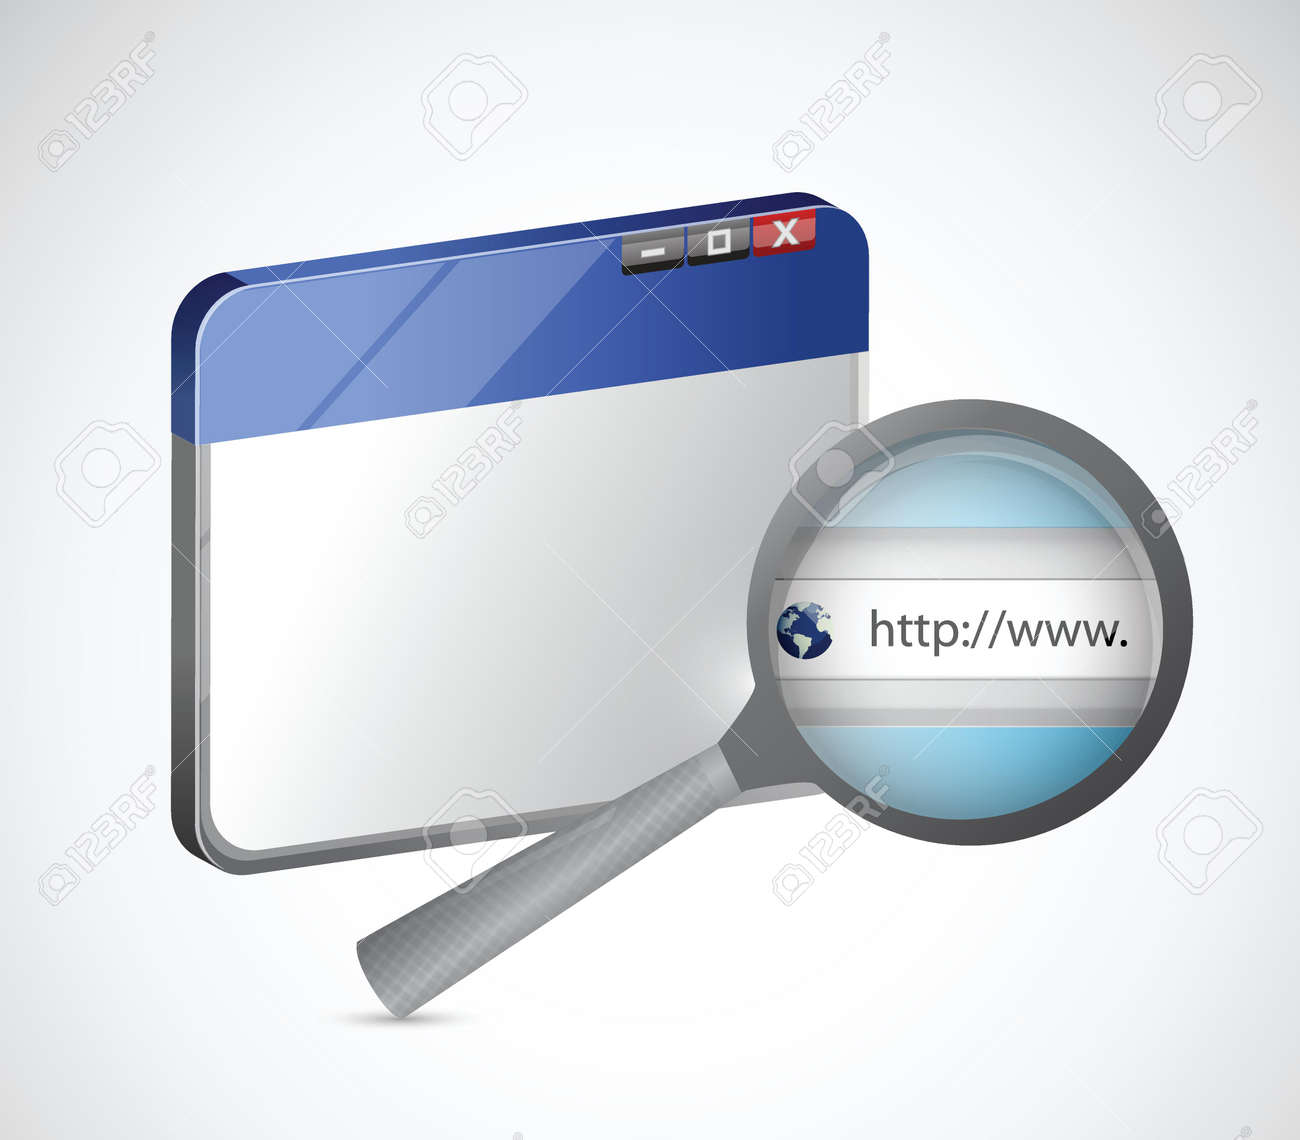 internet browser and magnify search bar illustration design over a white background Stock Vector - 24928851